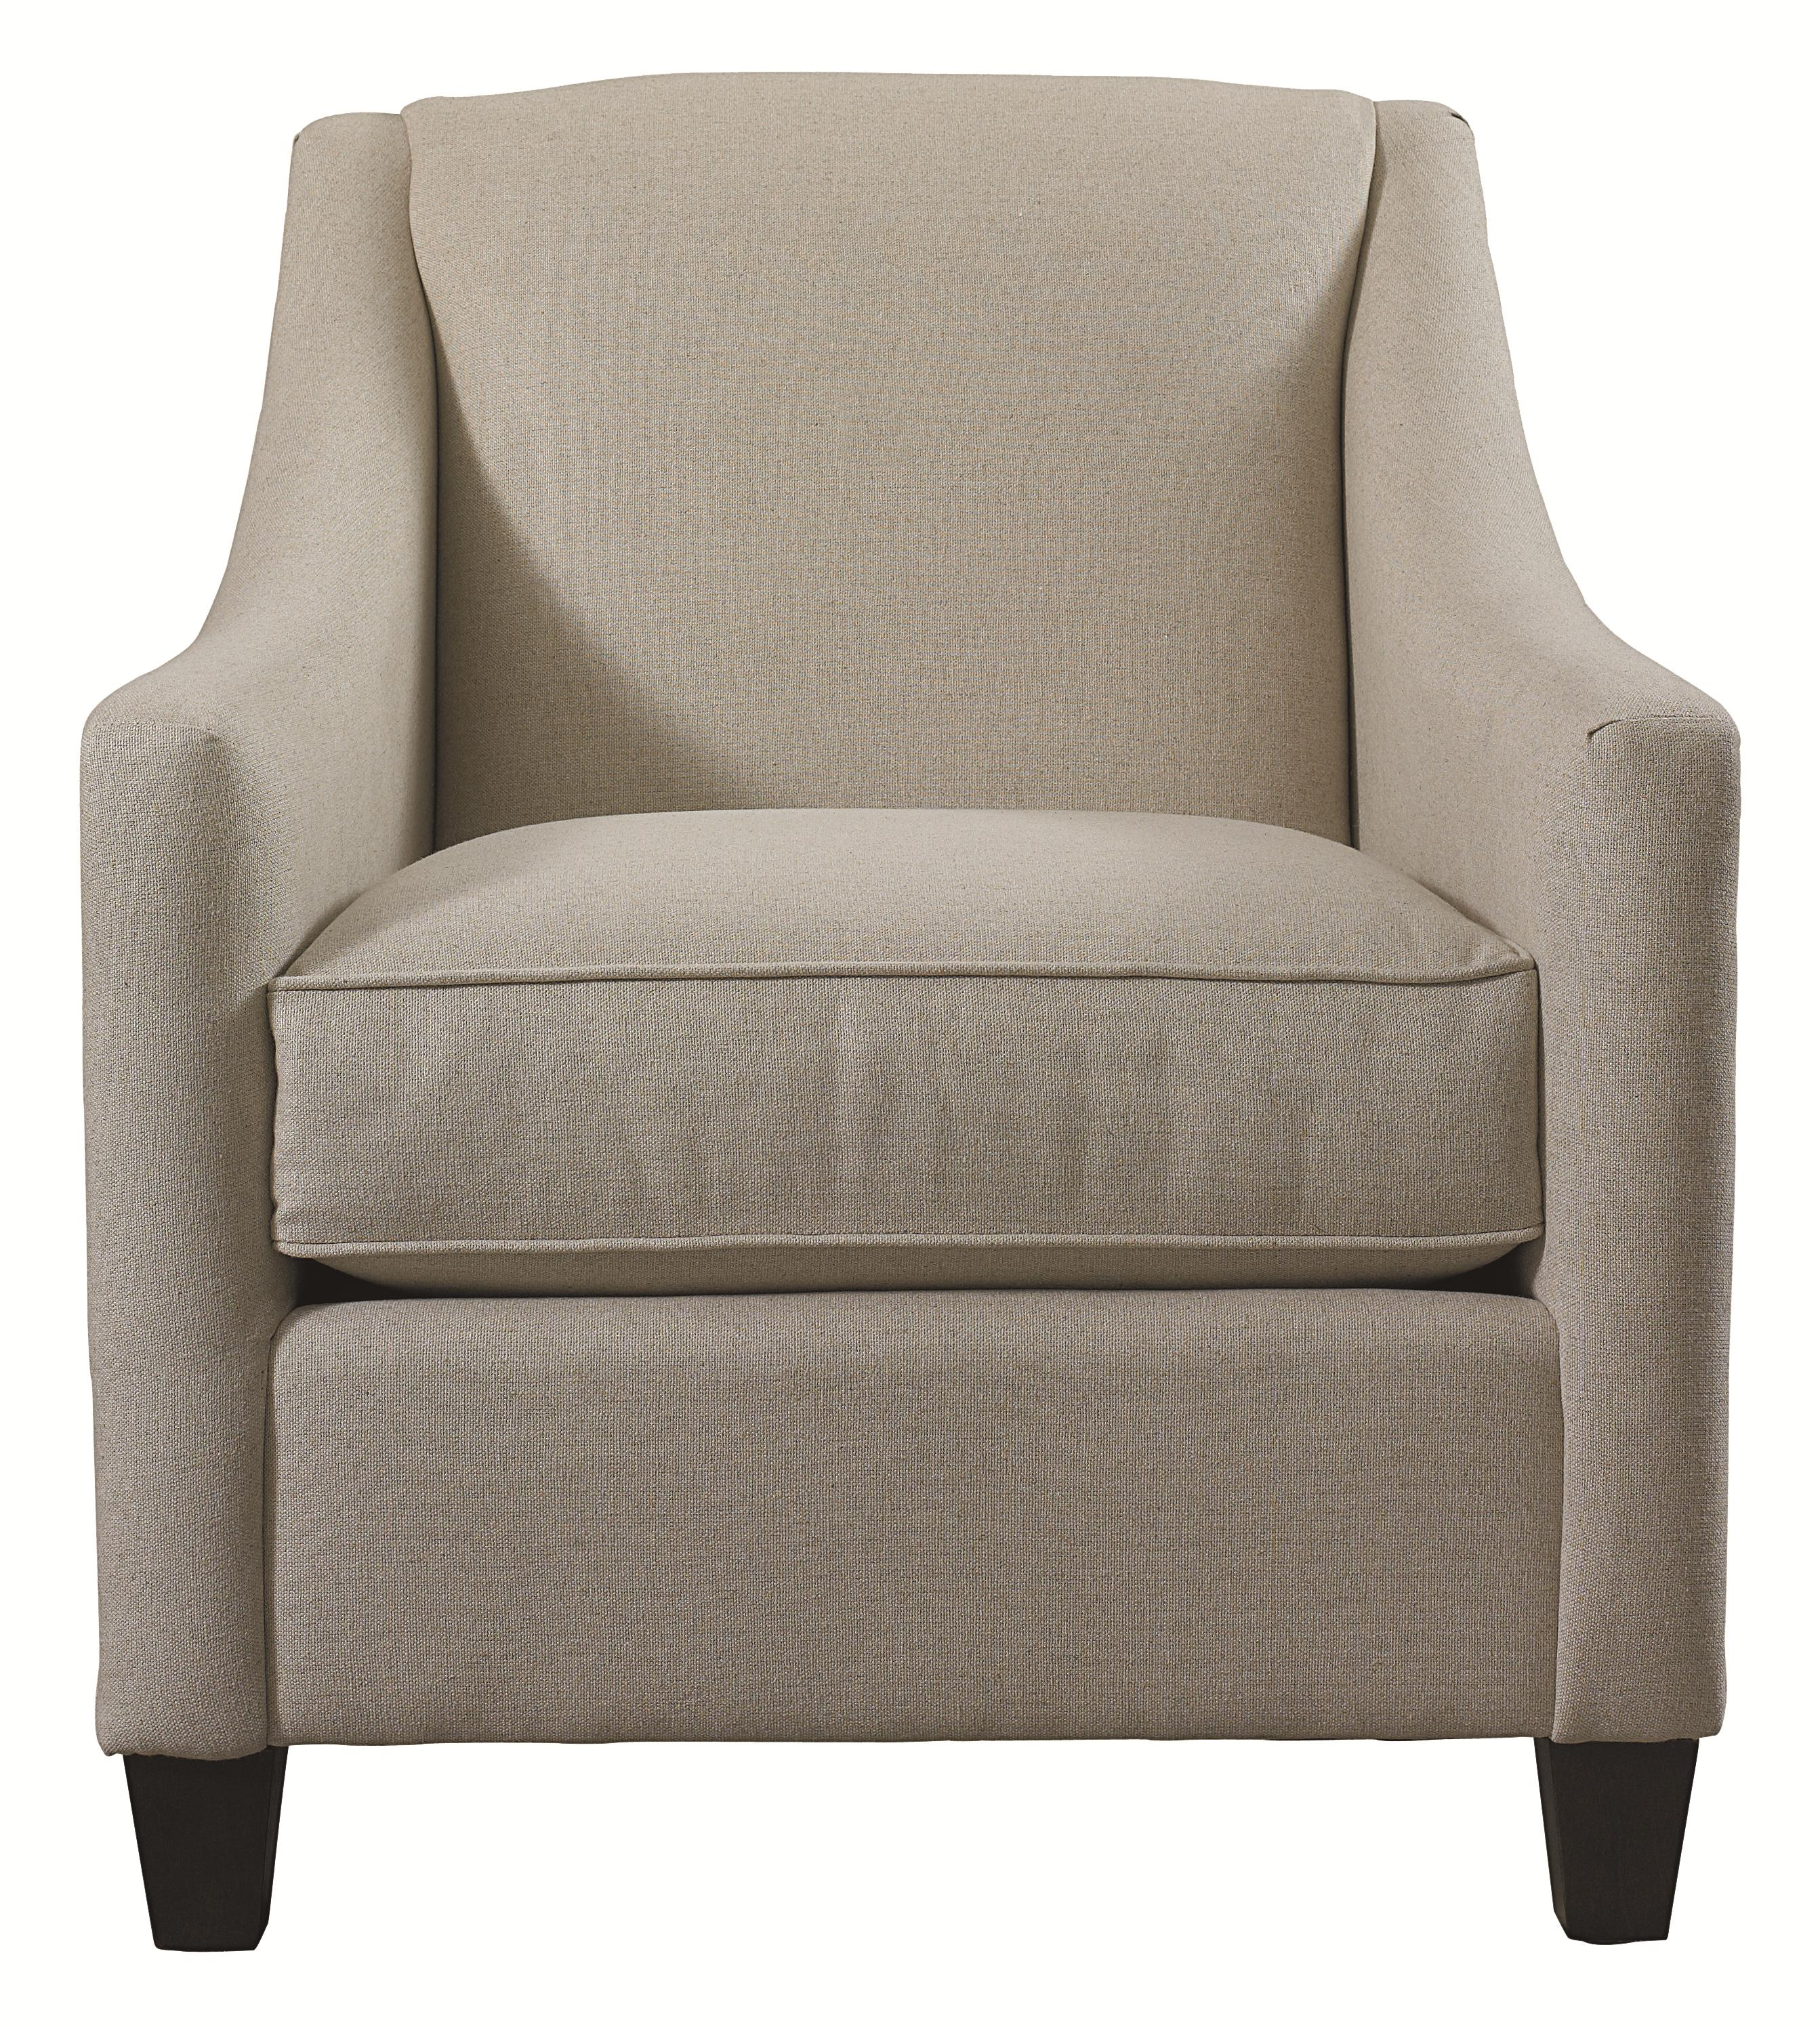 Corina Accent Chair by Bassett at Bassett of Cool Springs